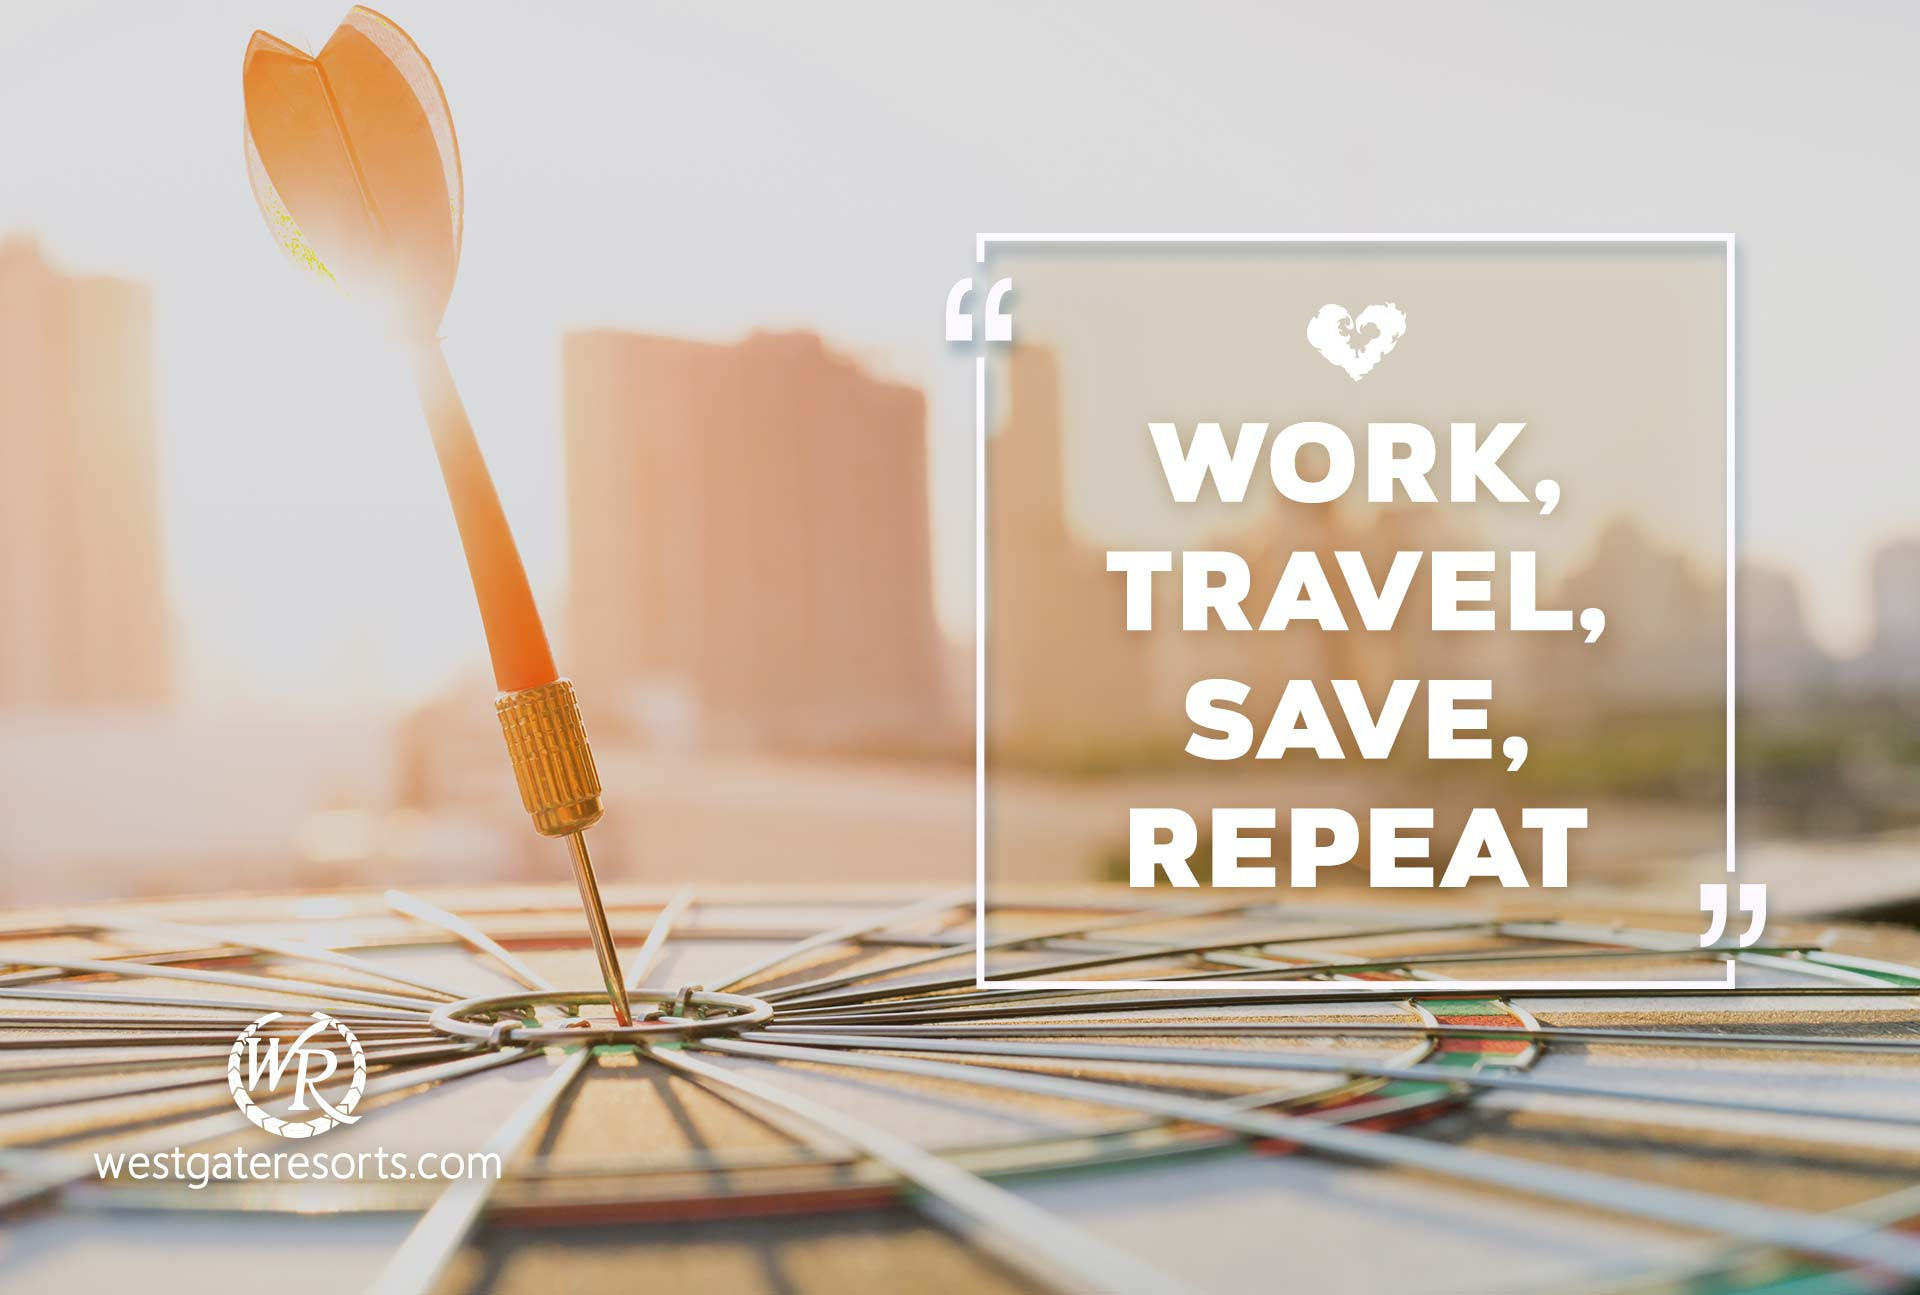 Work, Travel, Save, Repeat | Travel Motivational Quotes